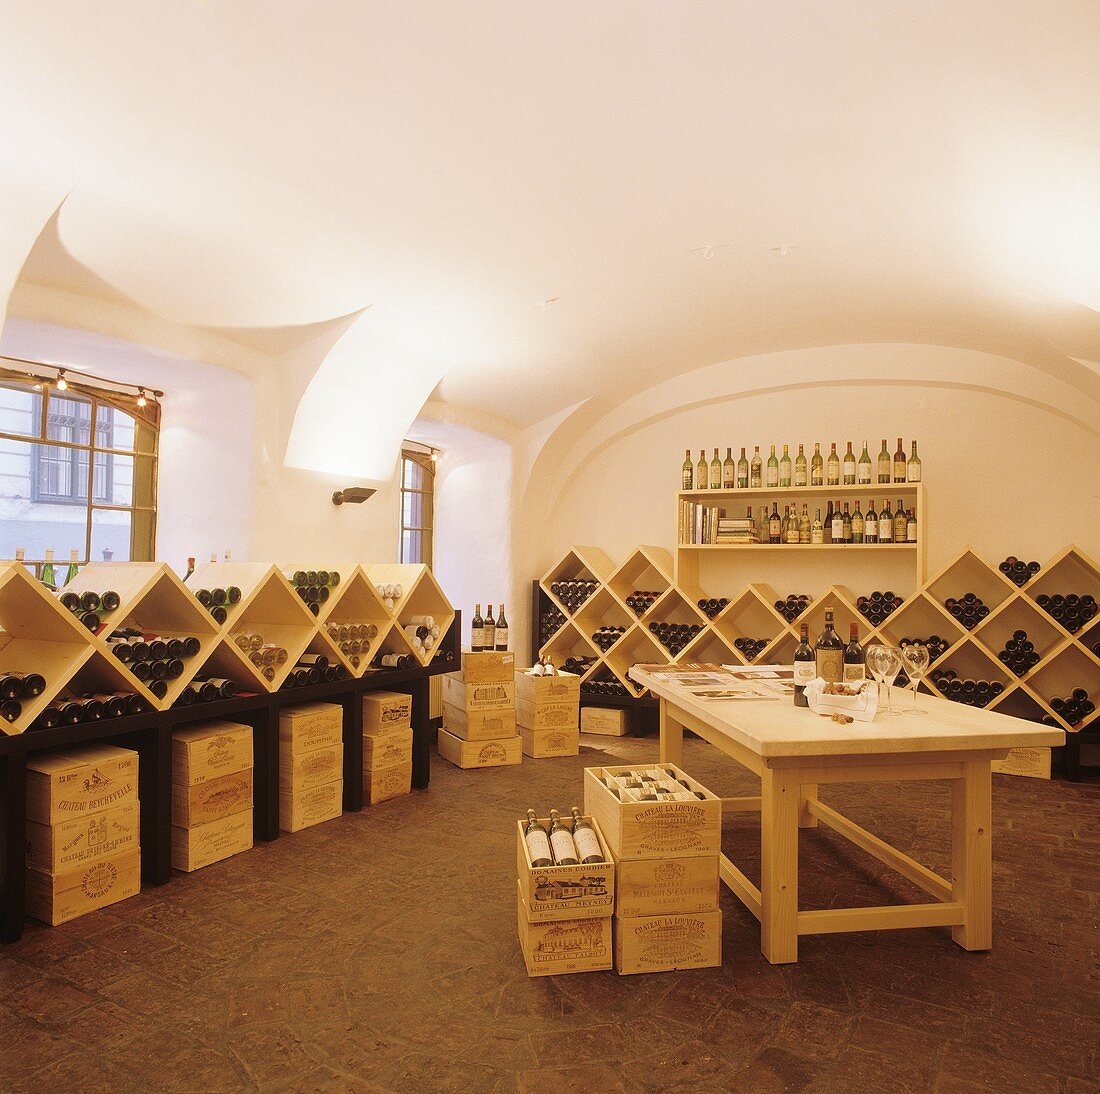 Wine merchants with wine bottles in racks and crates